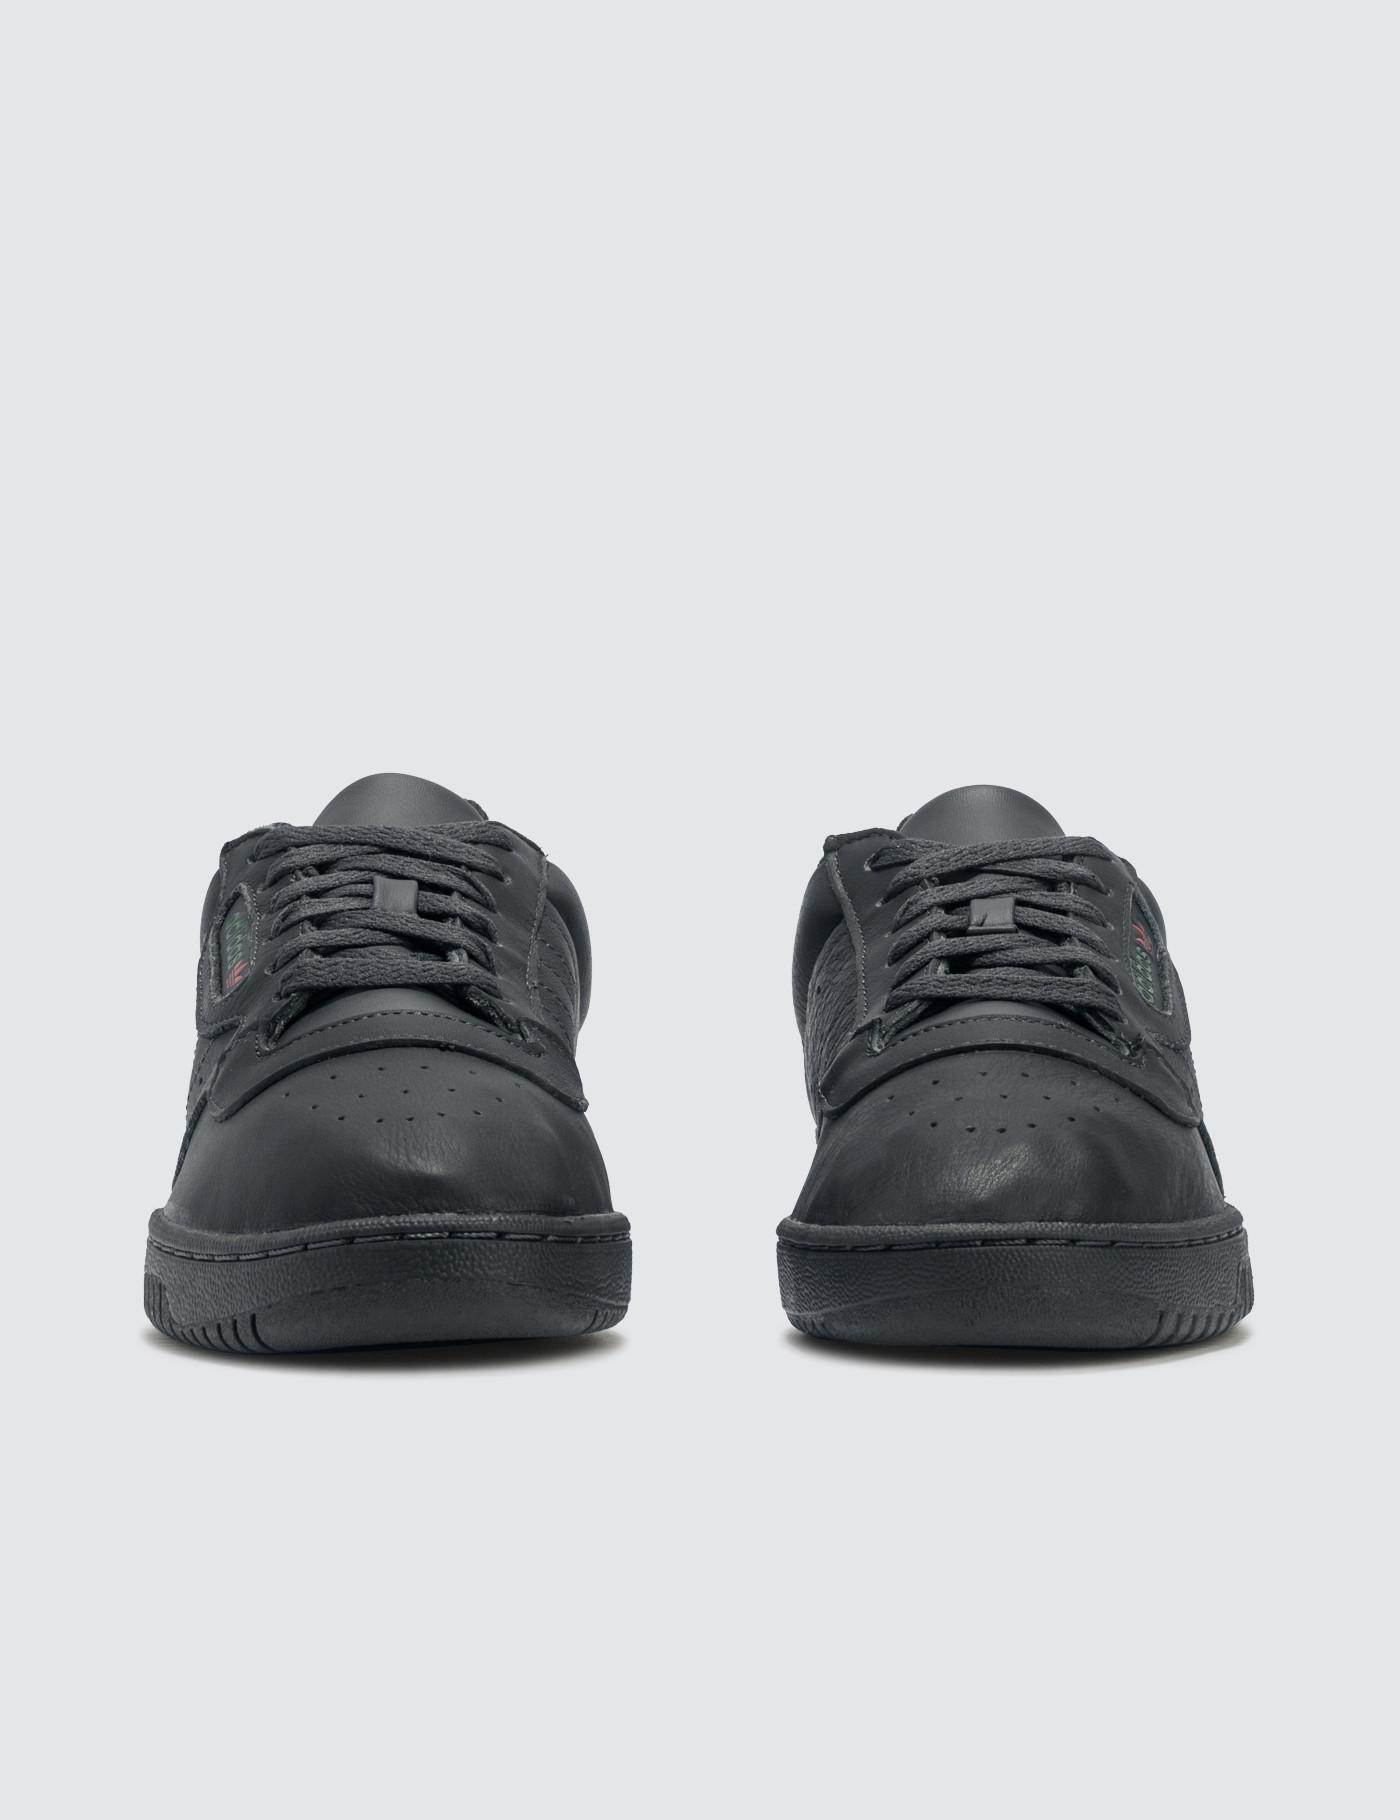 the best attitude e6697 eb4db adidas Originals Yeezy Powerphase in Black - Lyst